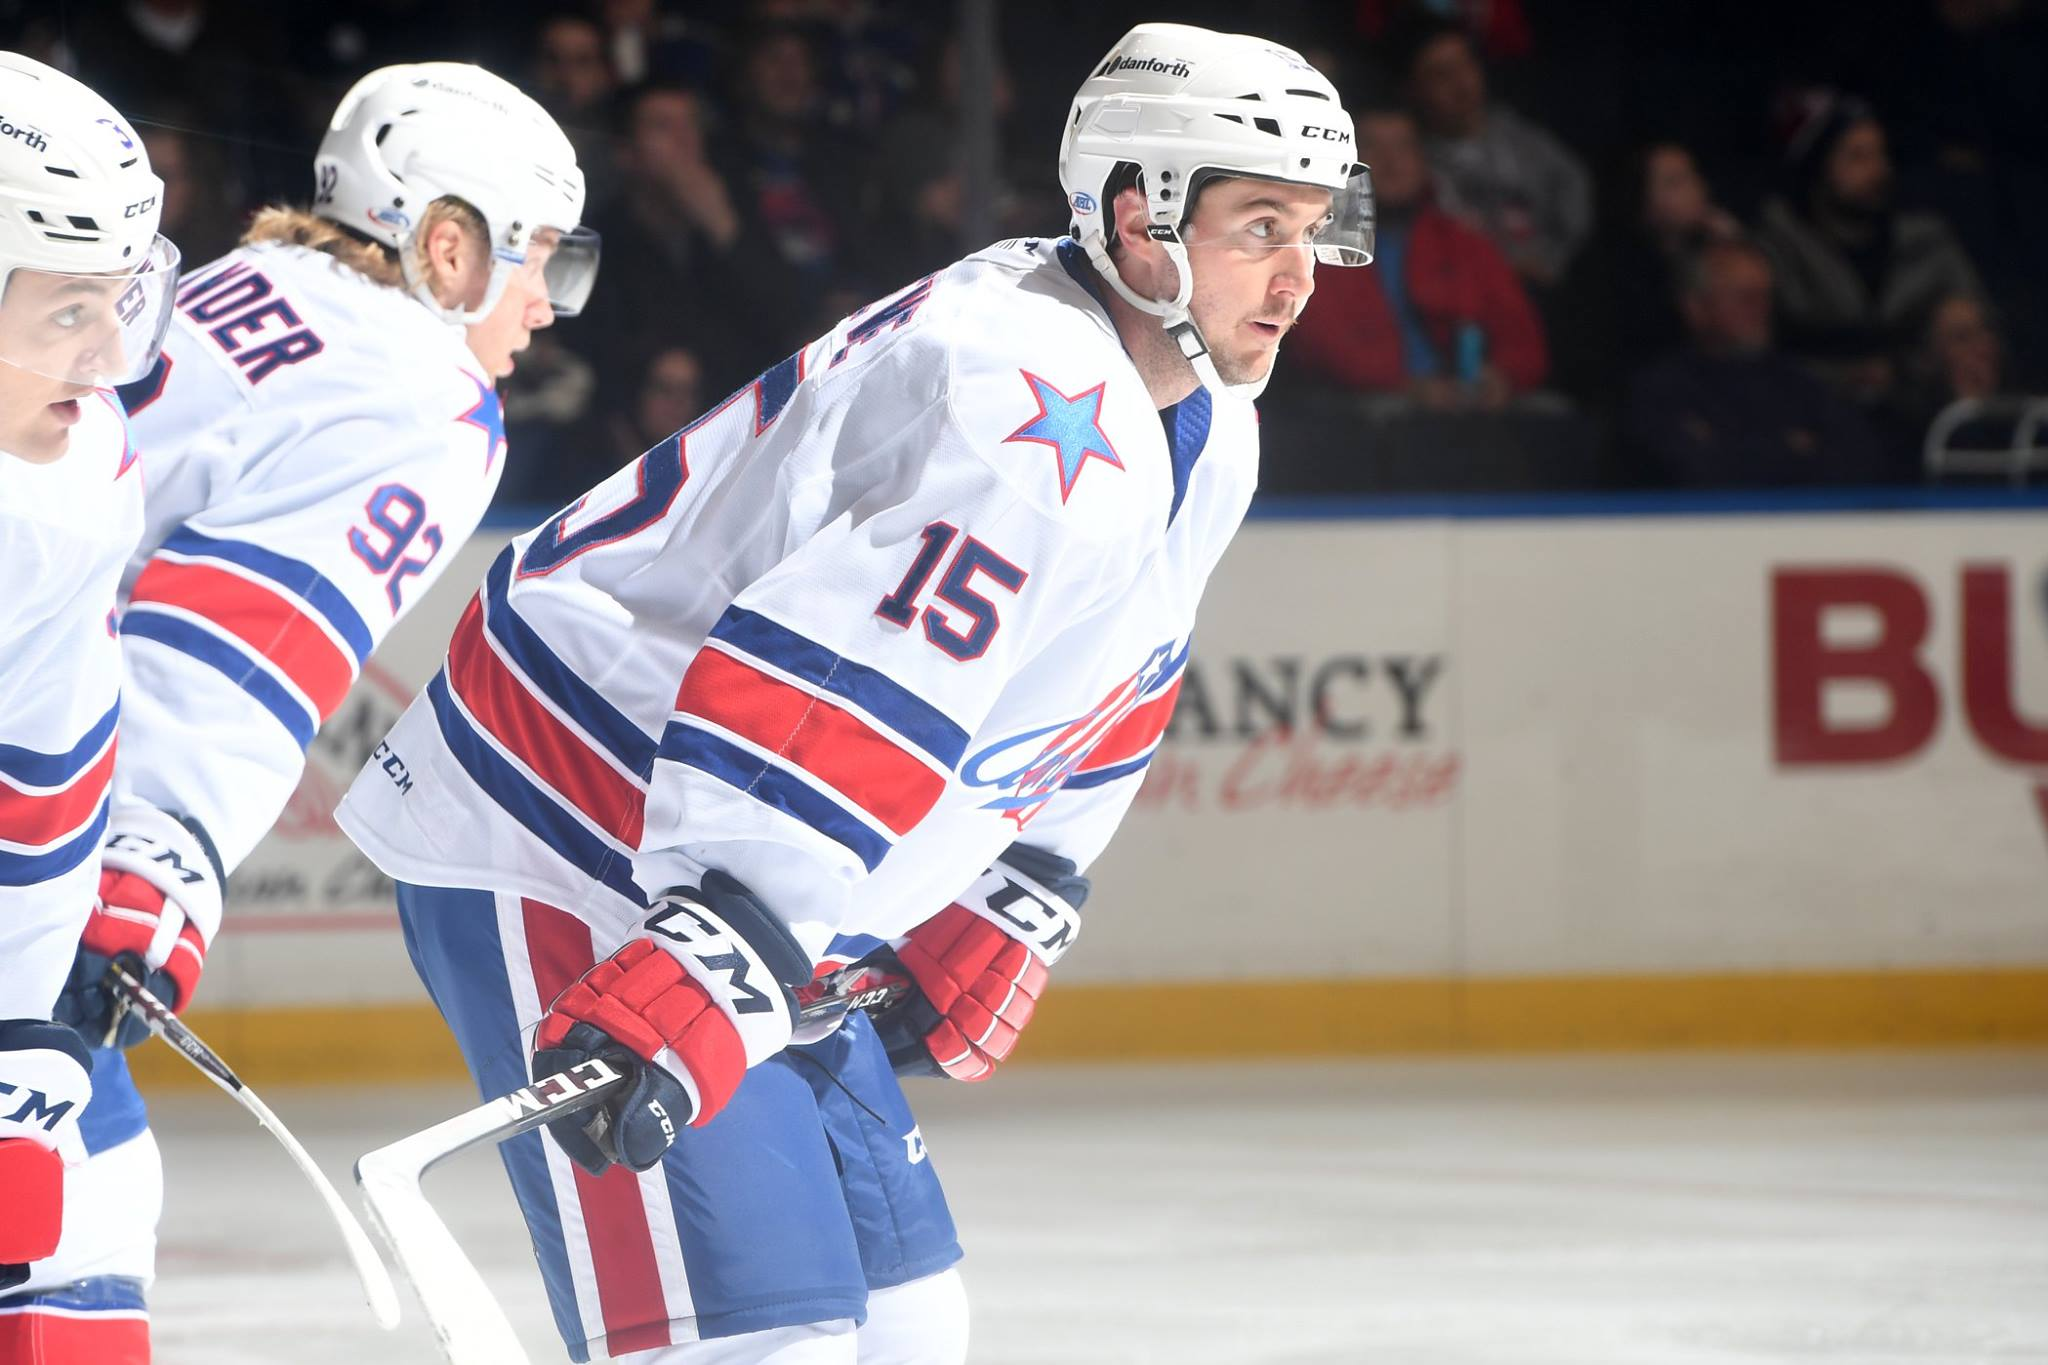 Recap of the Last 5 Games (Games 46-50)